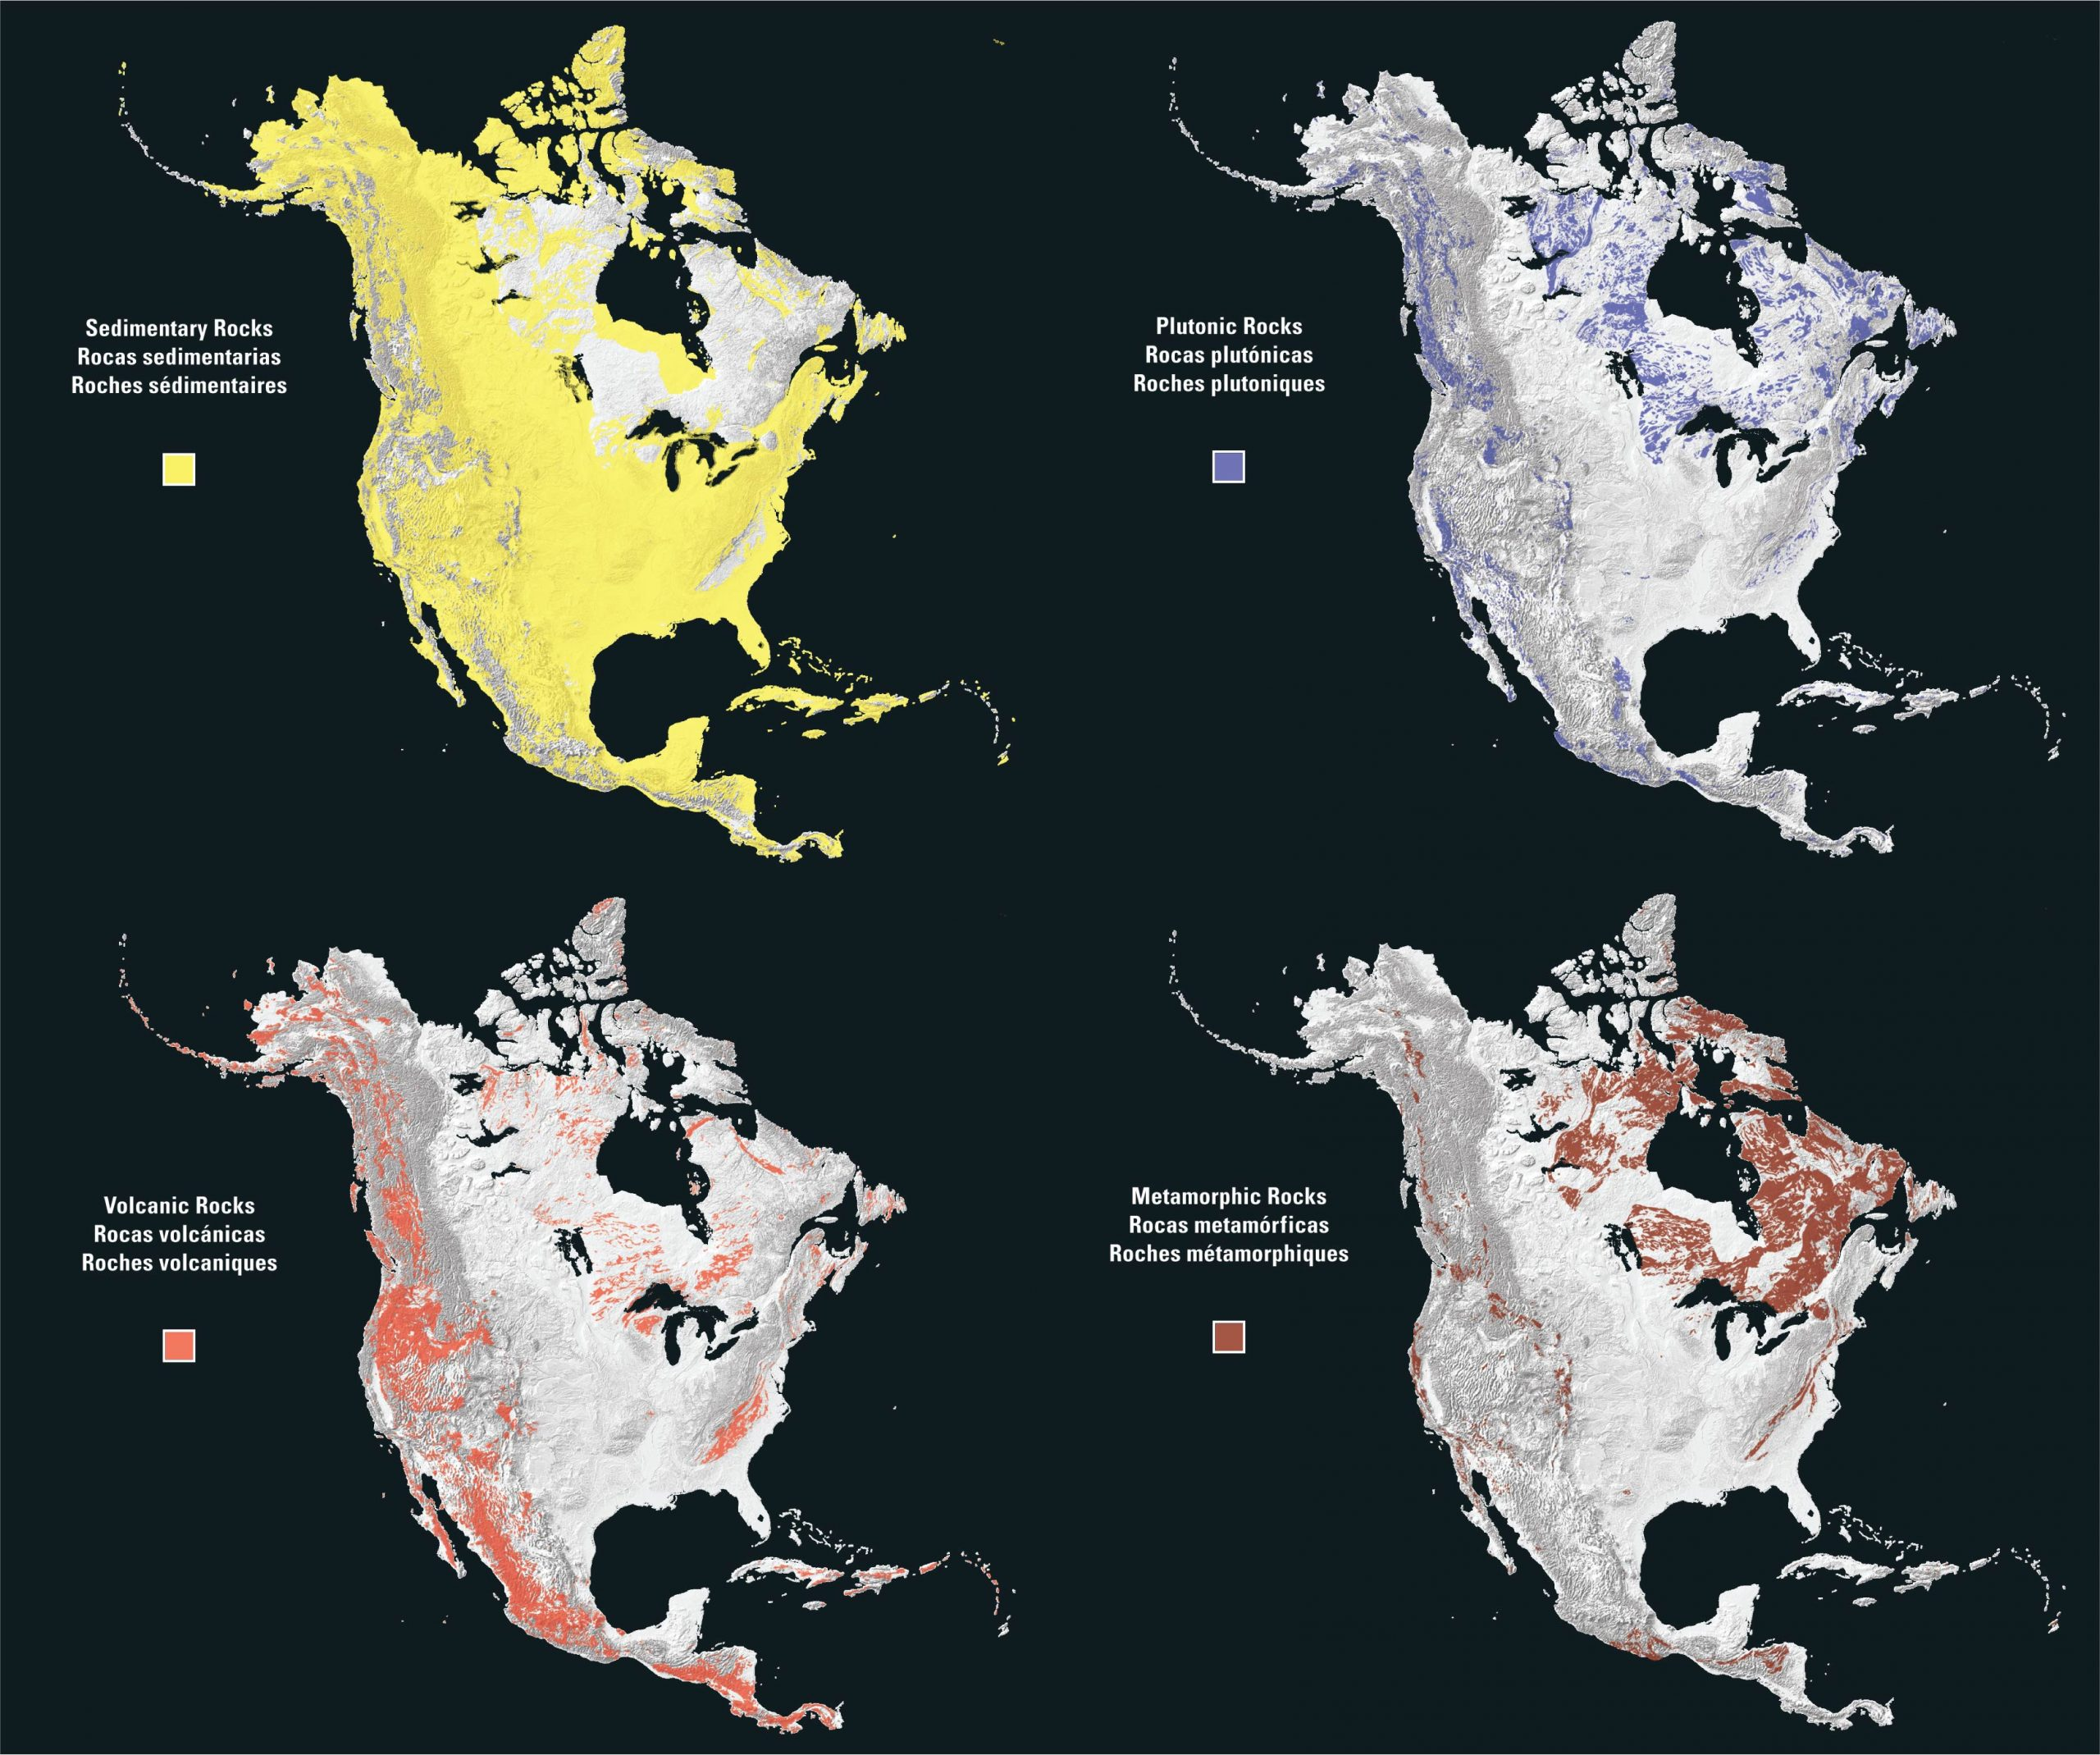 Sedimentary rocks cover most of the North American surface, followed by volcanic rocks, metamorphic rocks, and plutonic rocks